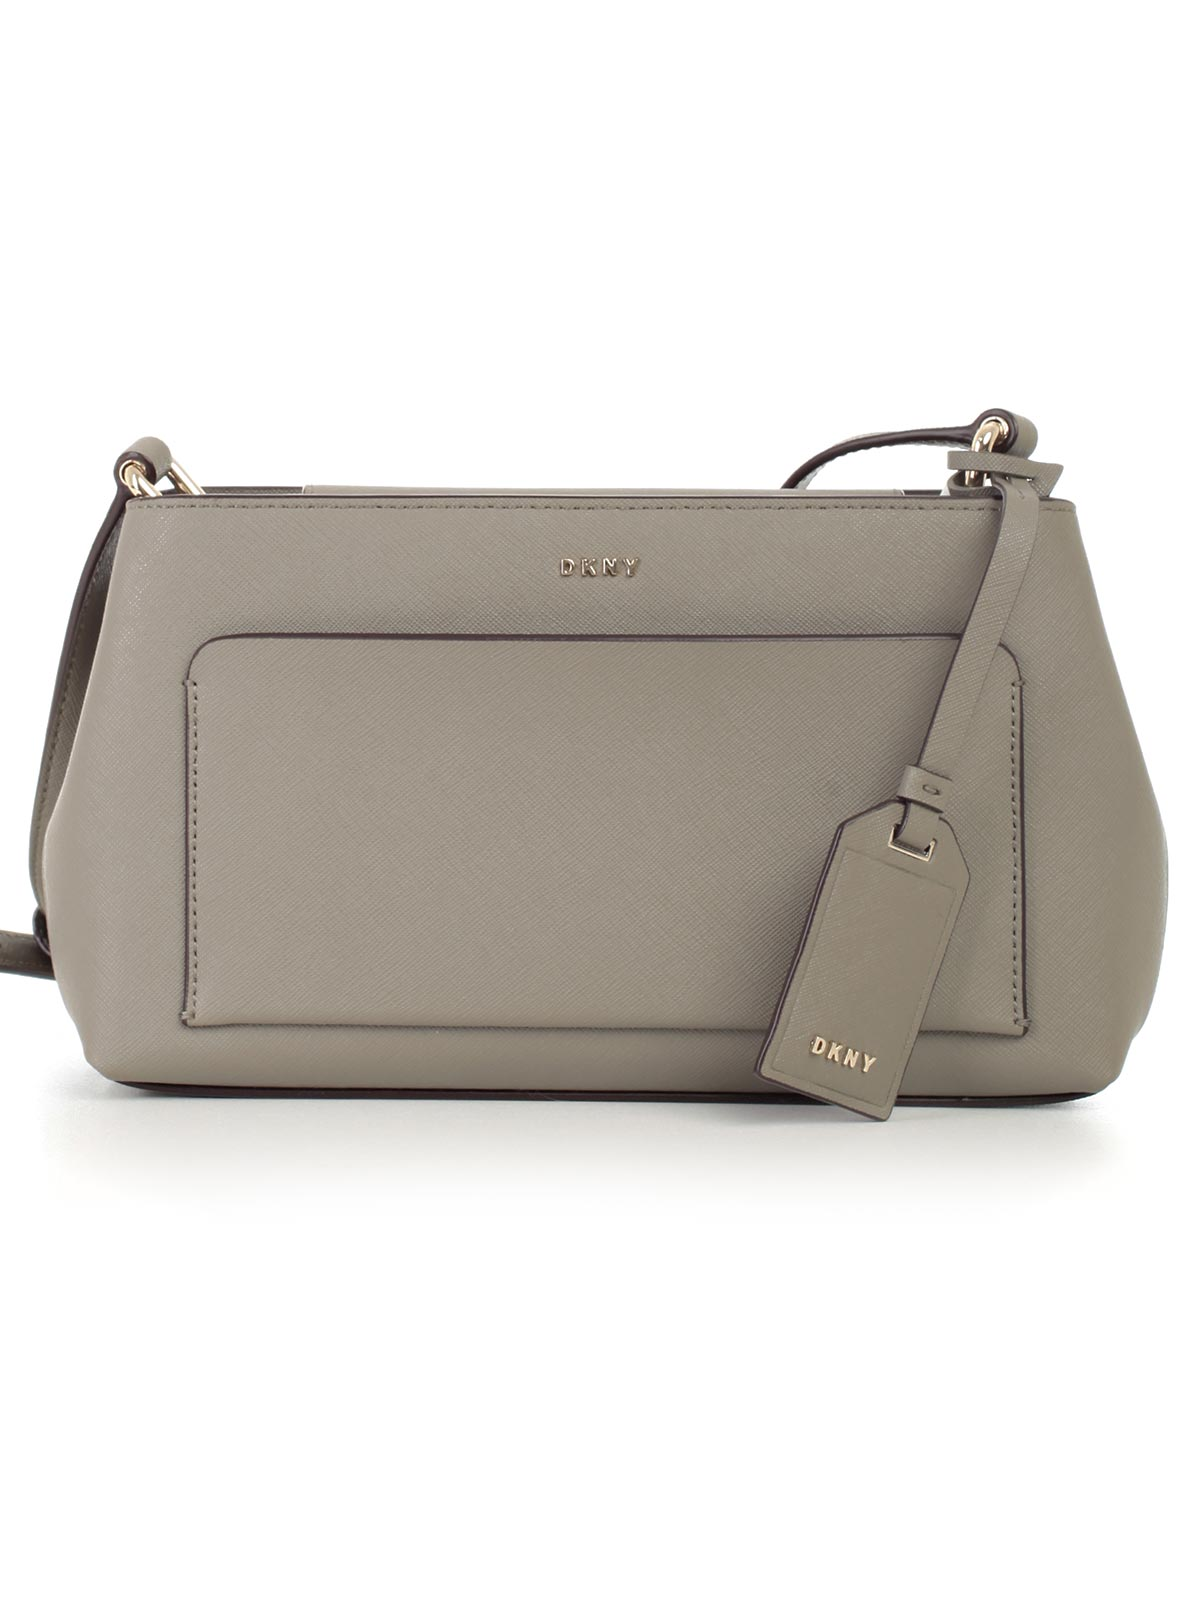 Picture of DKNY BAG CROSSBODY TRACOLLA SOFT SAFFIANO